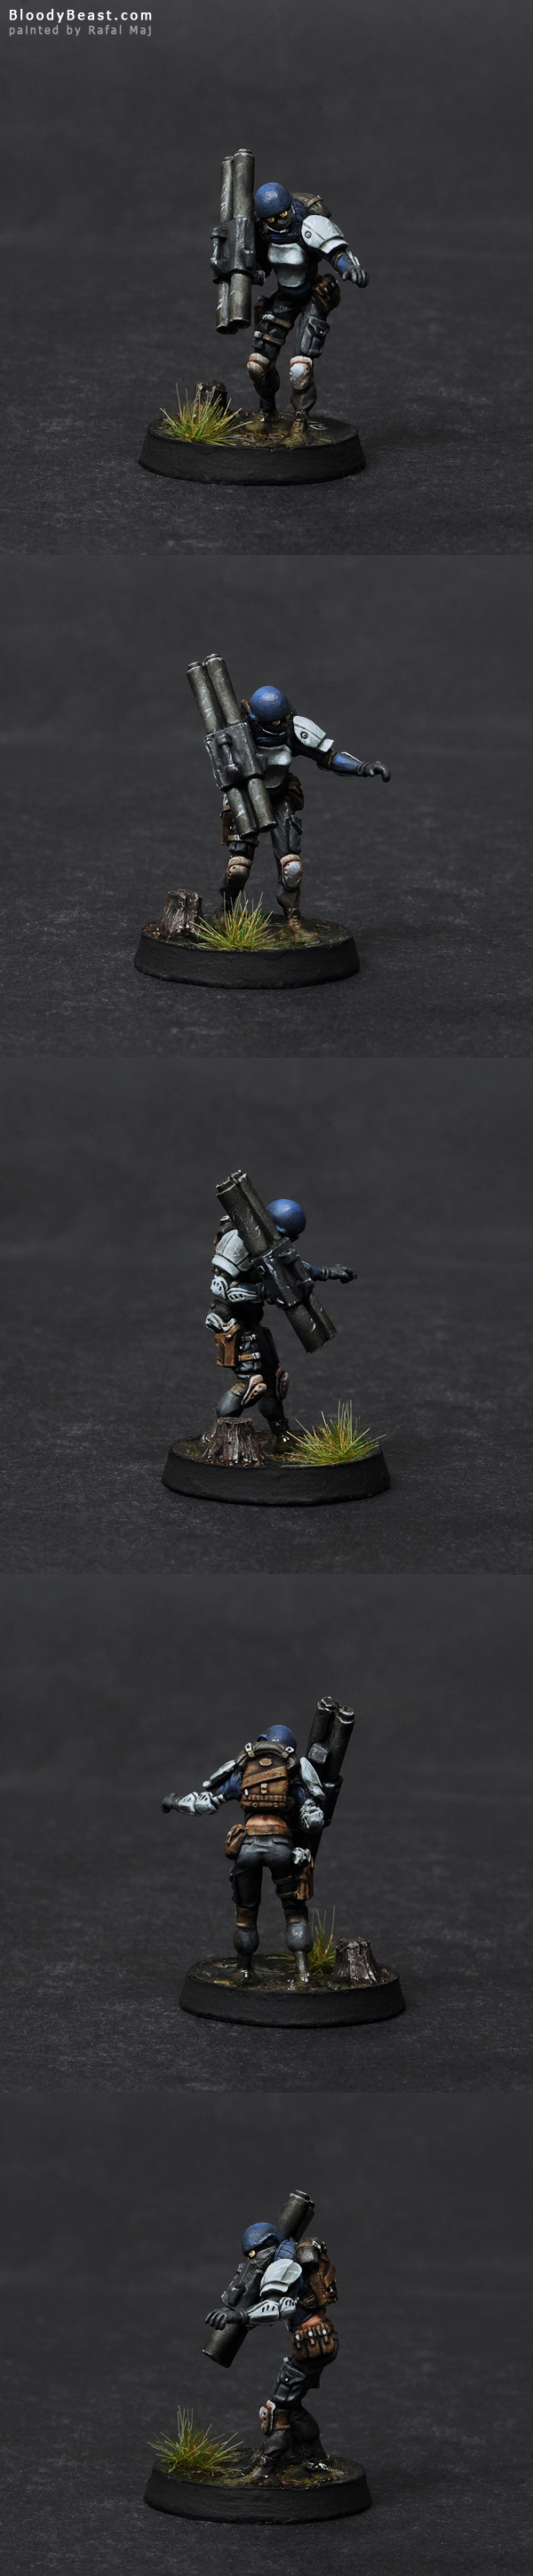 Ariadna Moblots Panzerfaust painted by Rafal Maj (BloodyBeast.com)